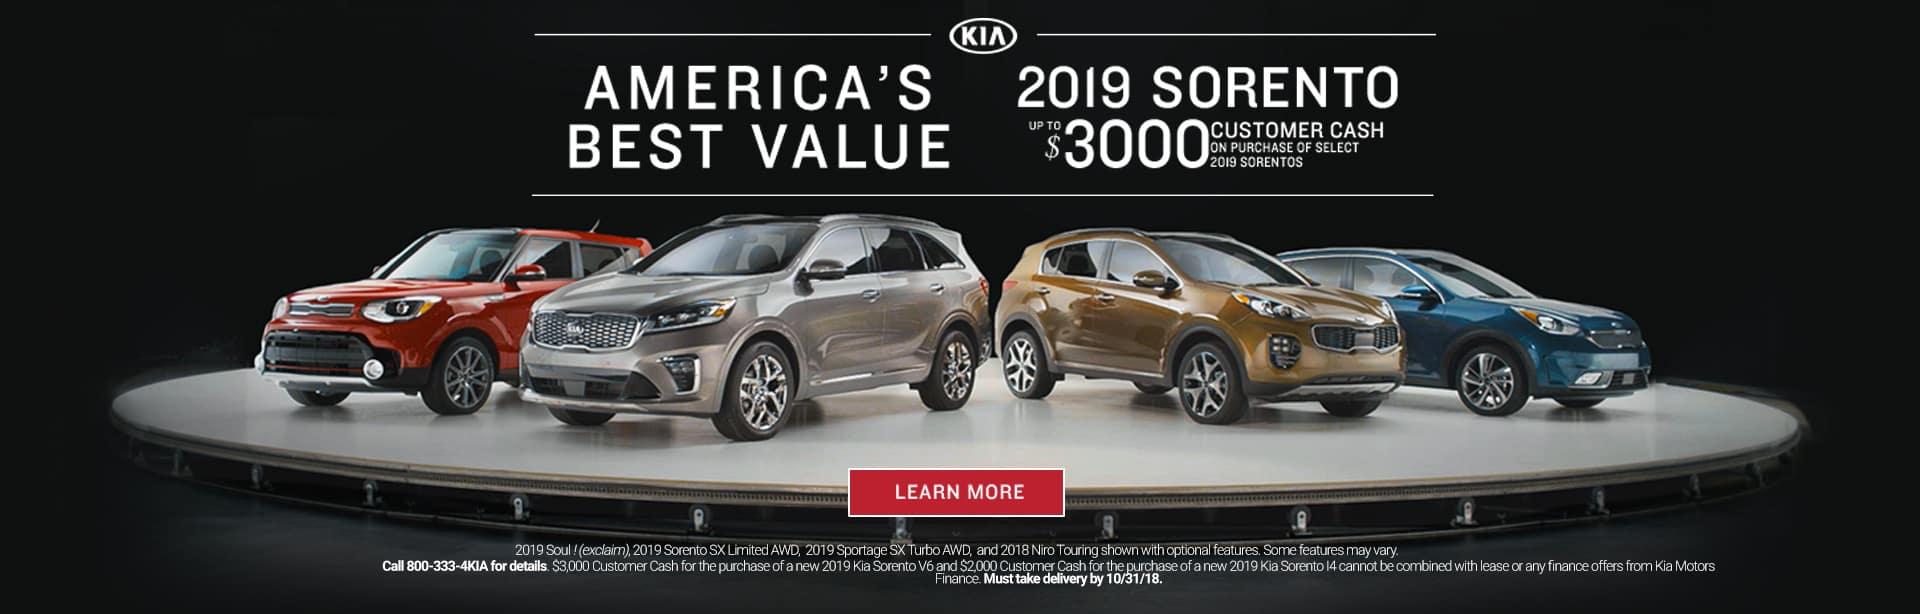 October_Sorento_Customer_Cash_1920x614